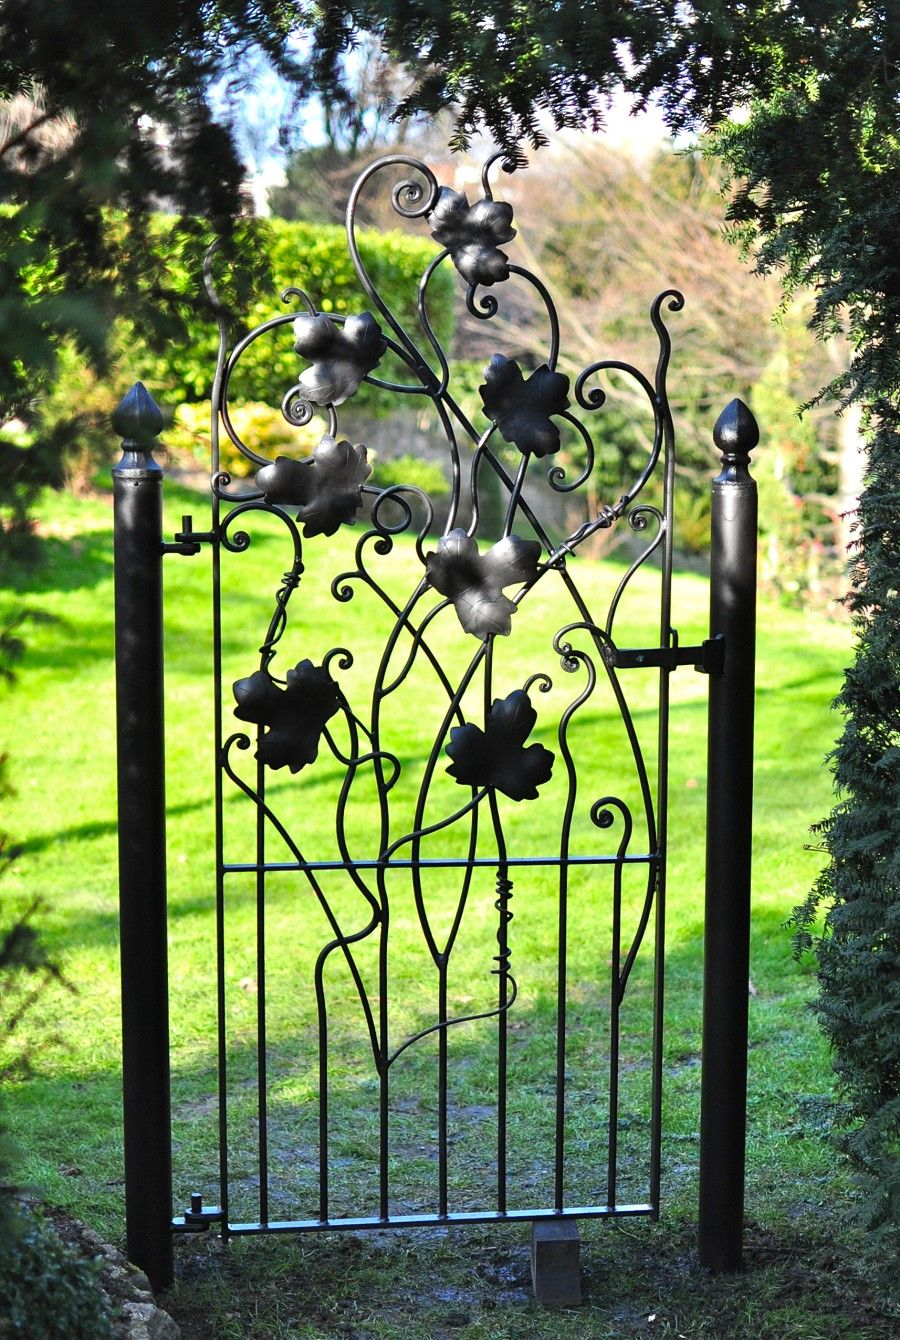 Sculpture and garden art artistic metal furniture and gates